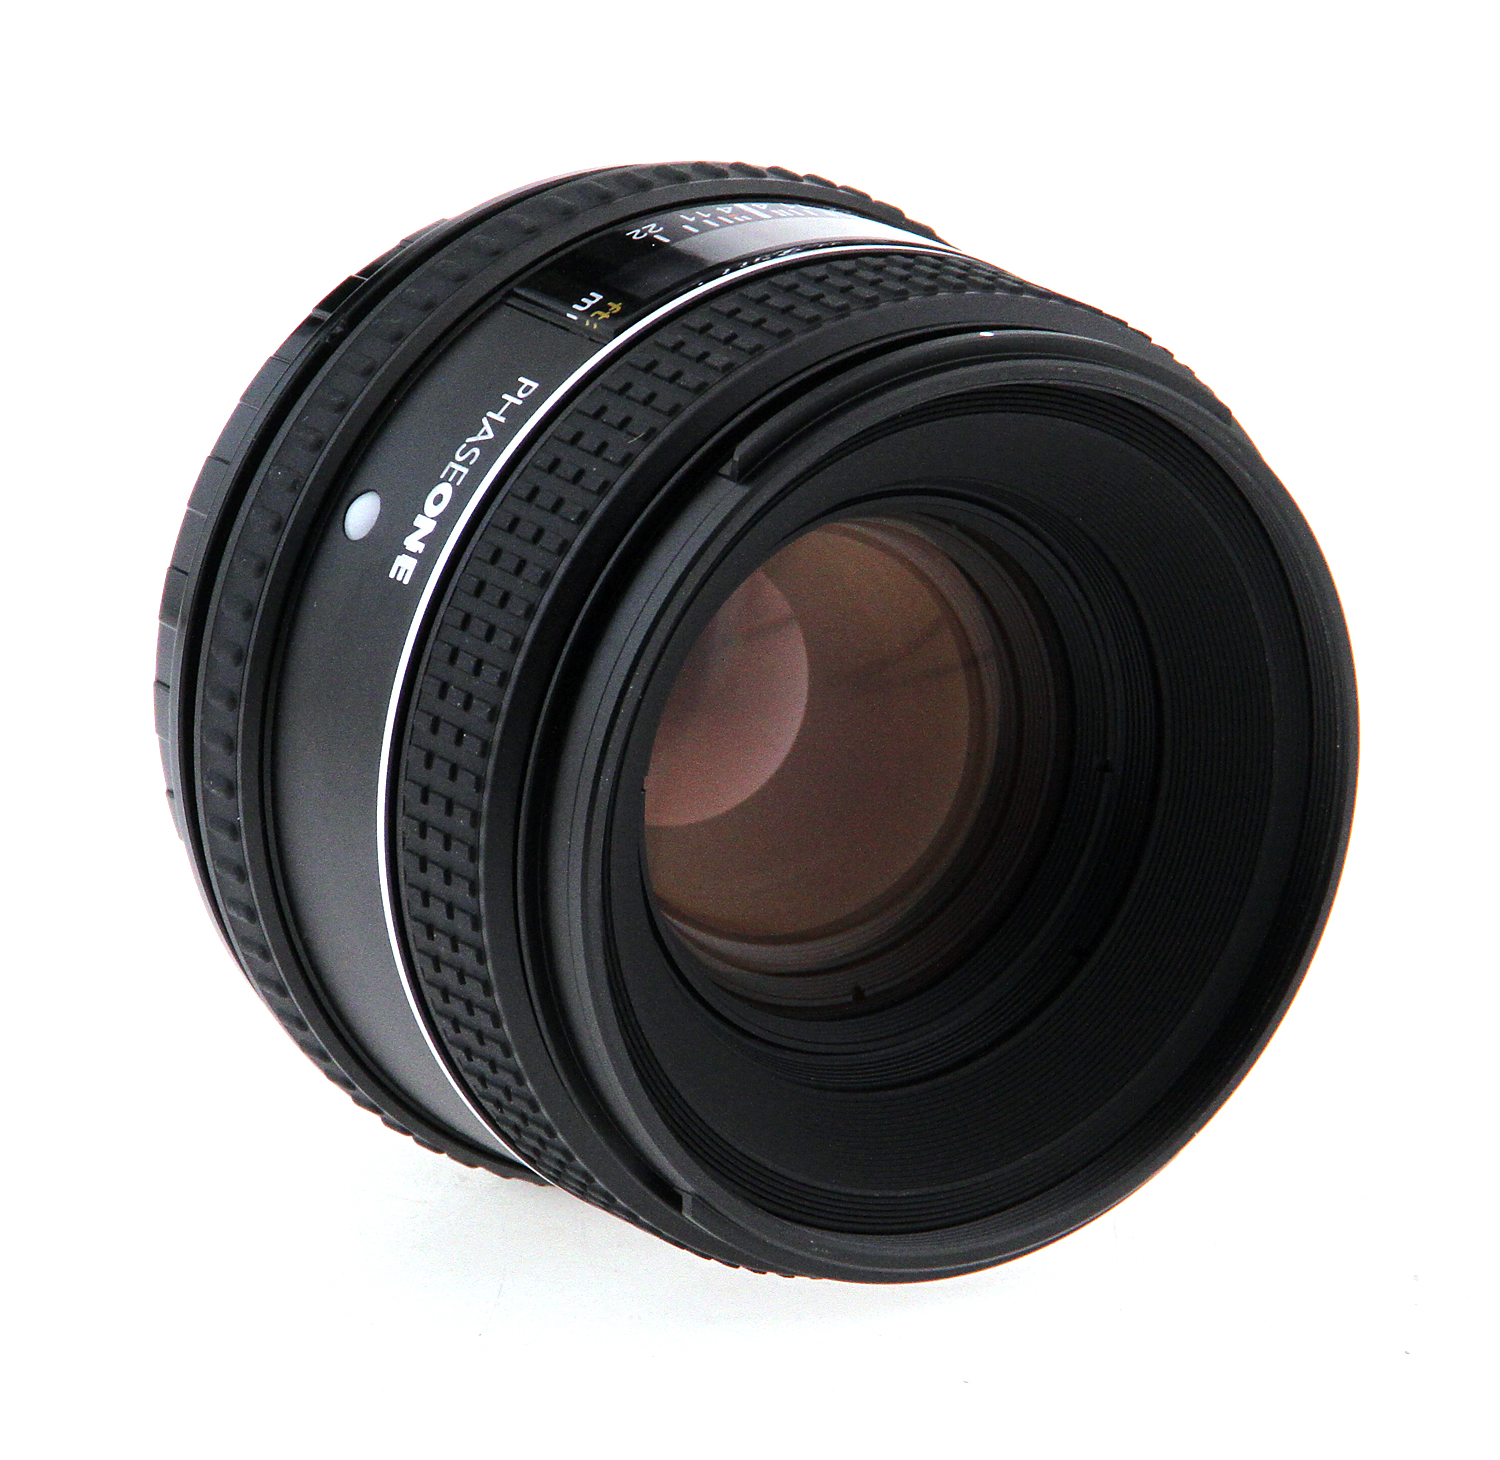 AF 80mm f/2.8 Digital Lens Open Box